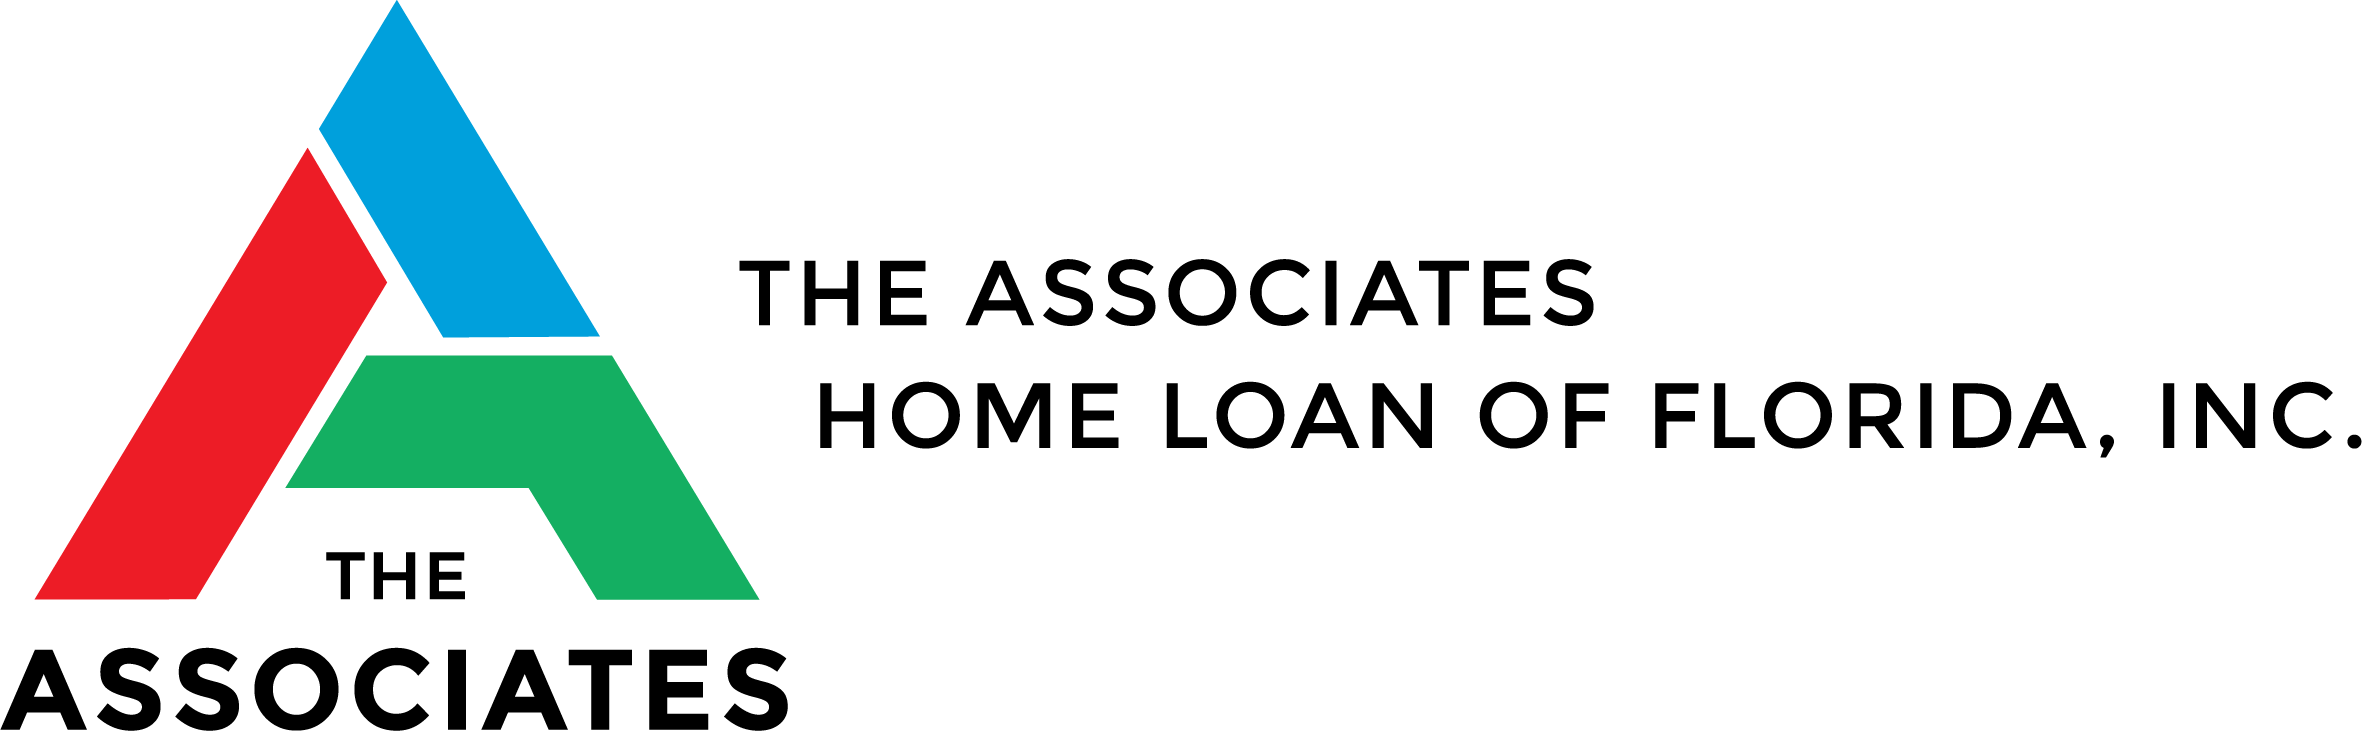 Associates Home Loan of Florida, Inc. image 0